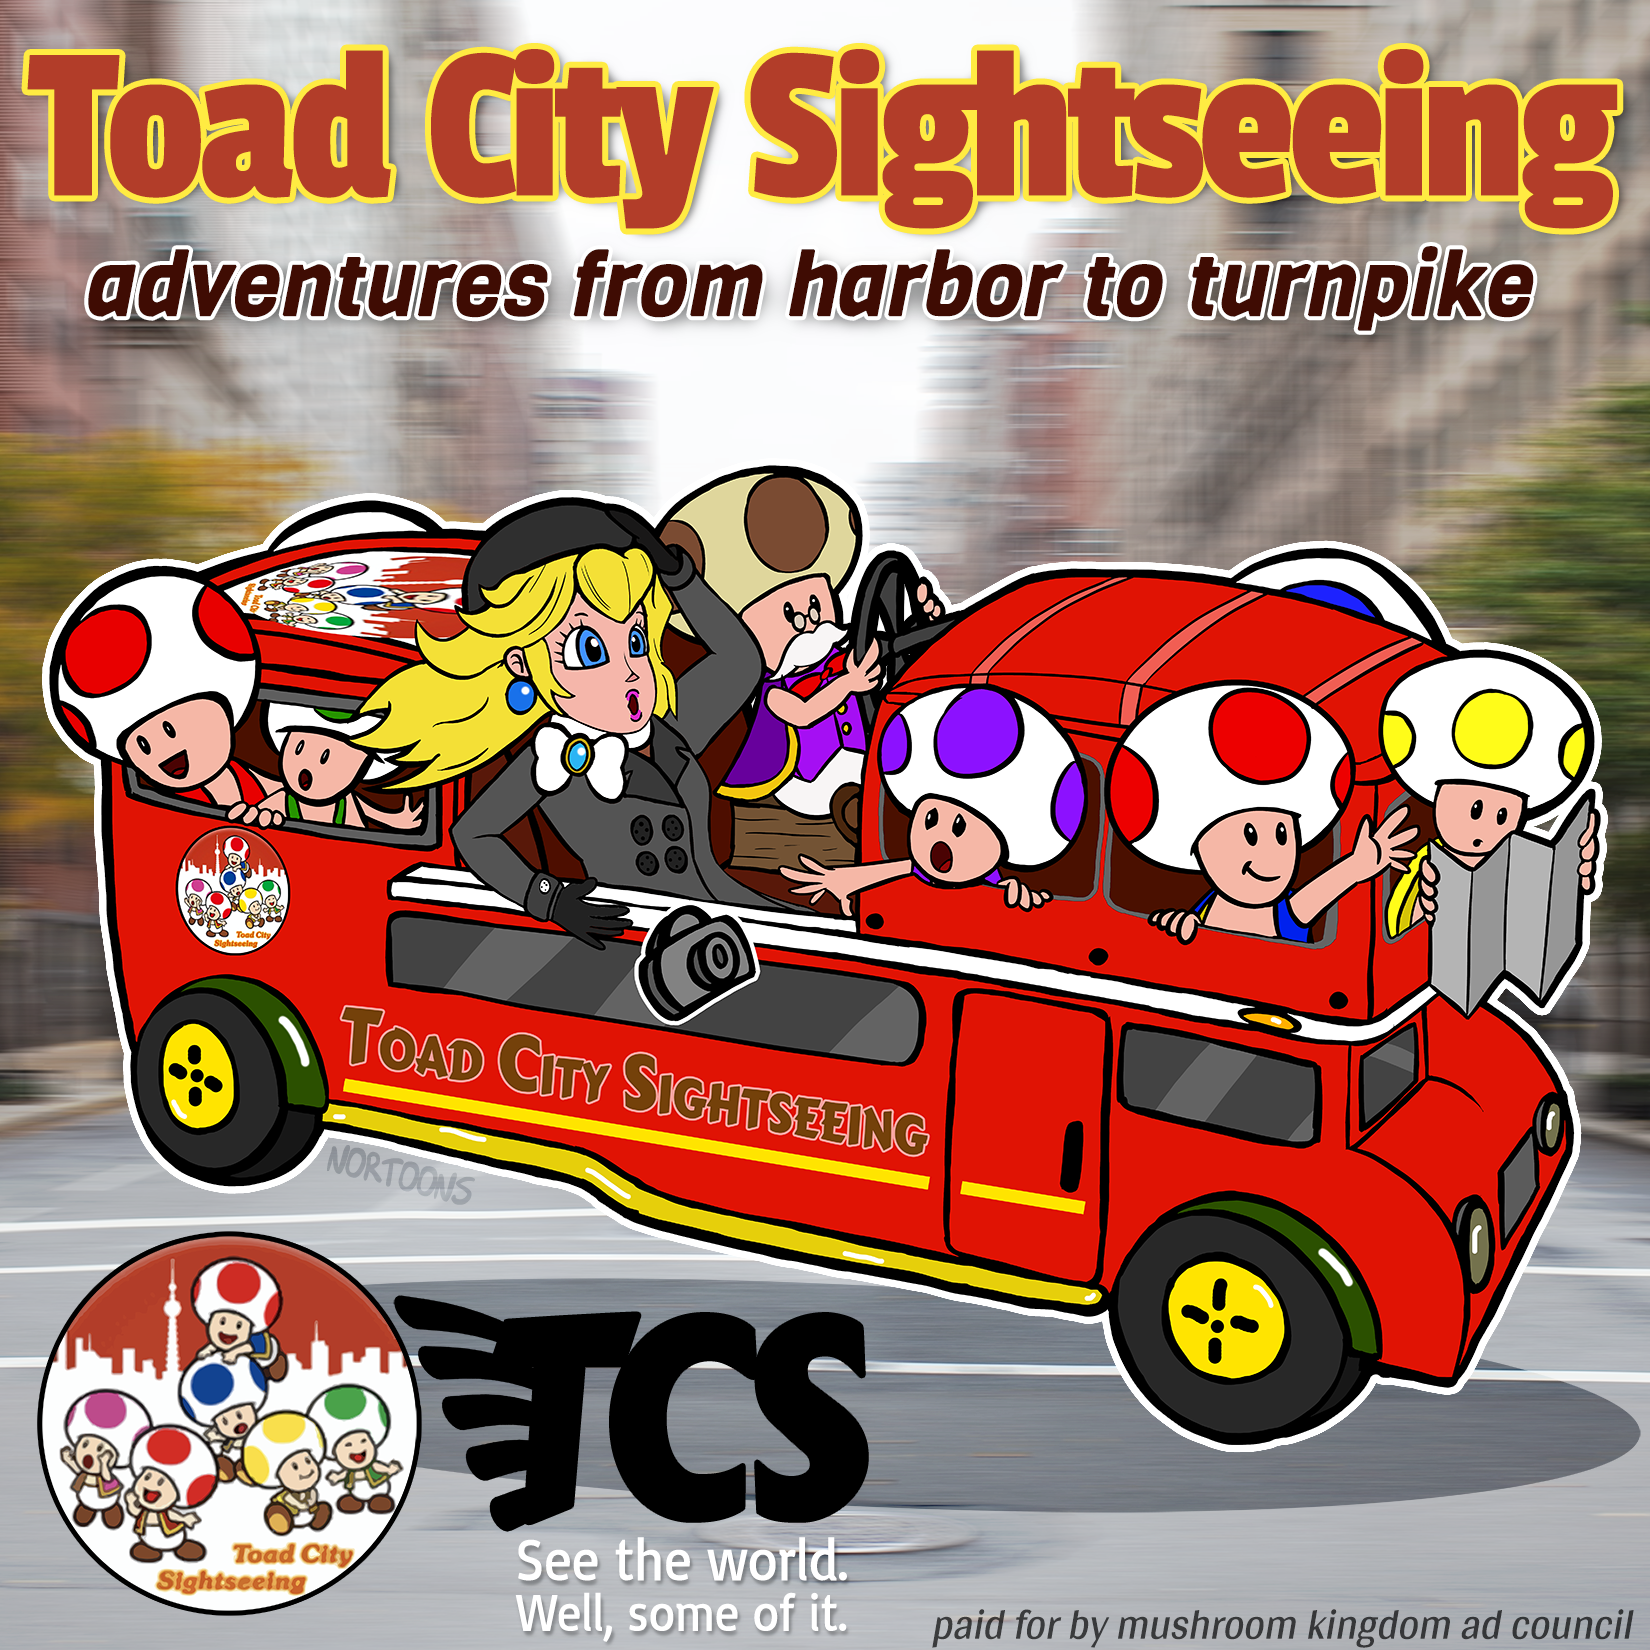 Toad City Sightseeing feat. Princess Peach, Toadsworth, and many Toads